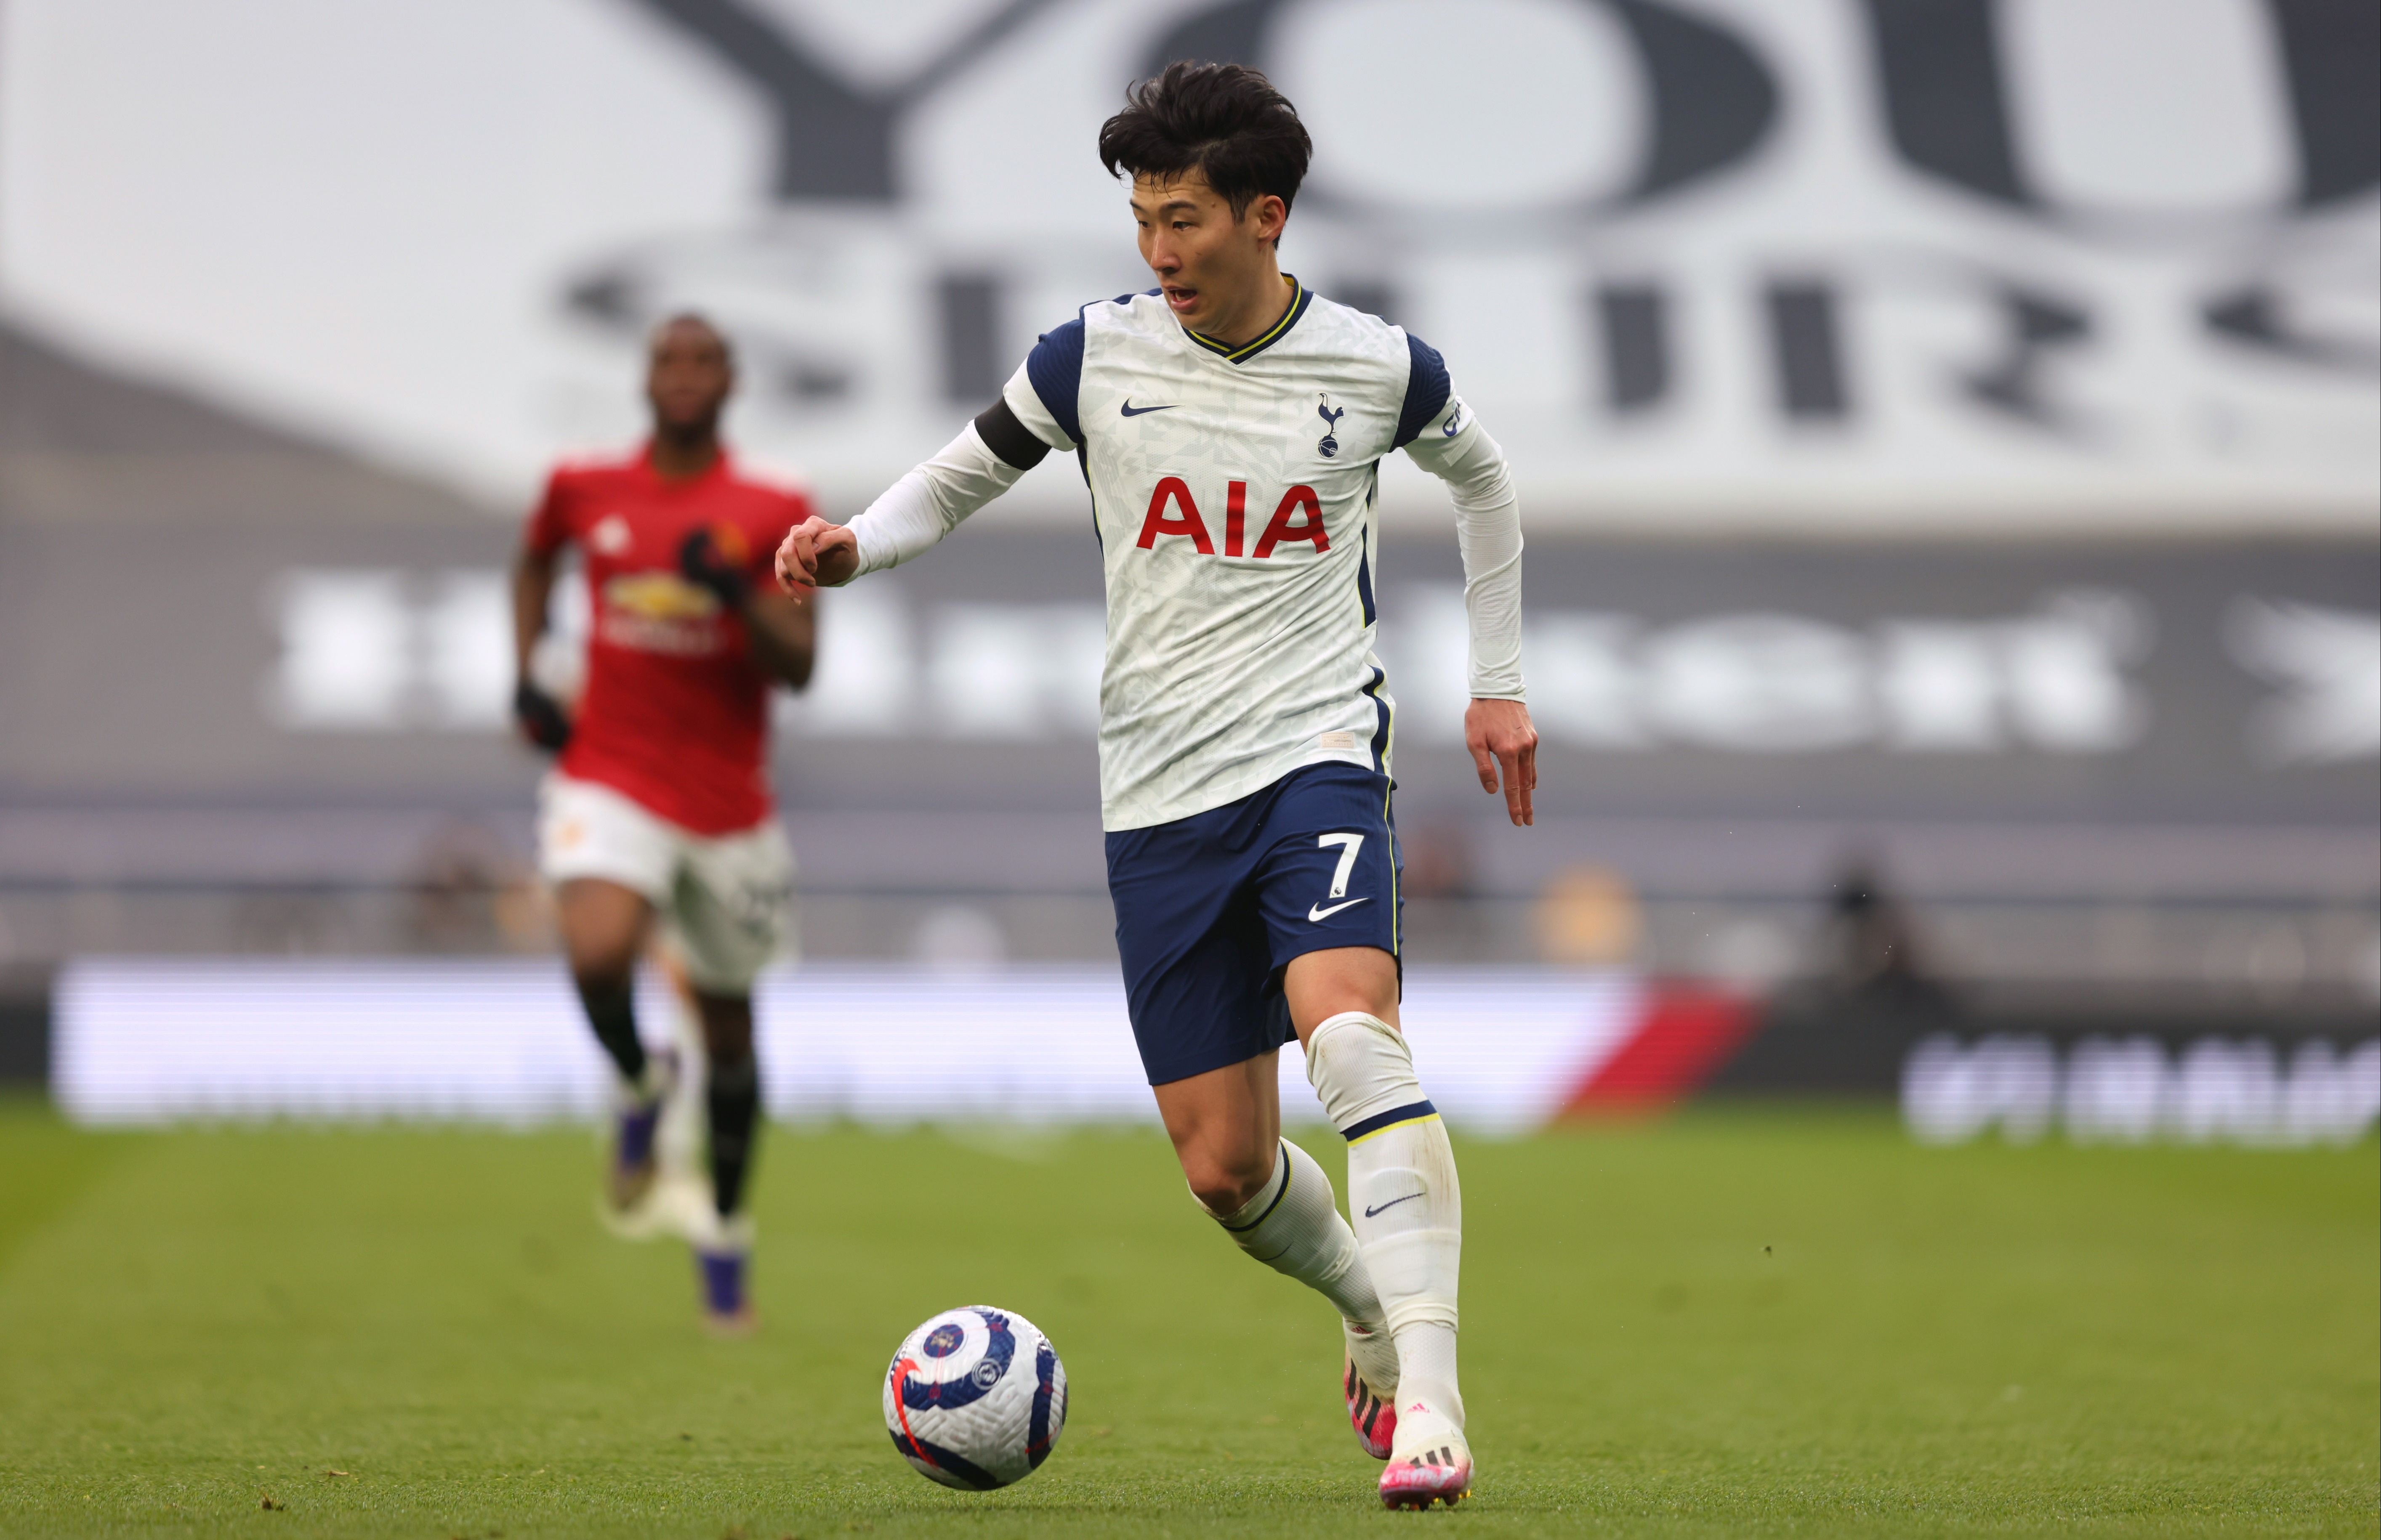 Tottenham condemn 'abhorrent' racial abuse of Heung-min Son after defeat to Man United as South Korea forward becomes latest Premier League star to be targeted online